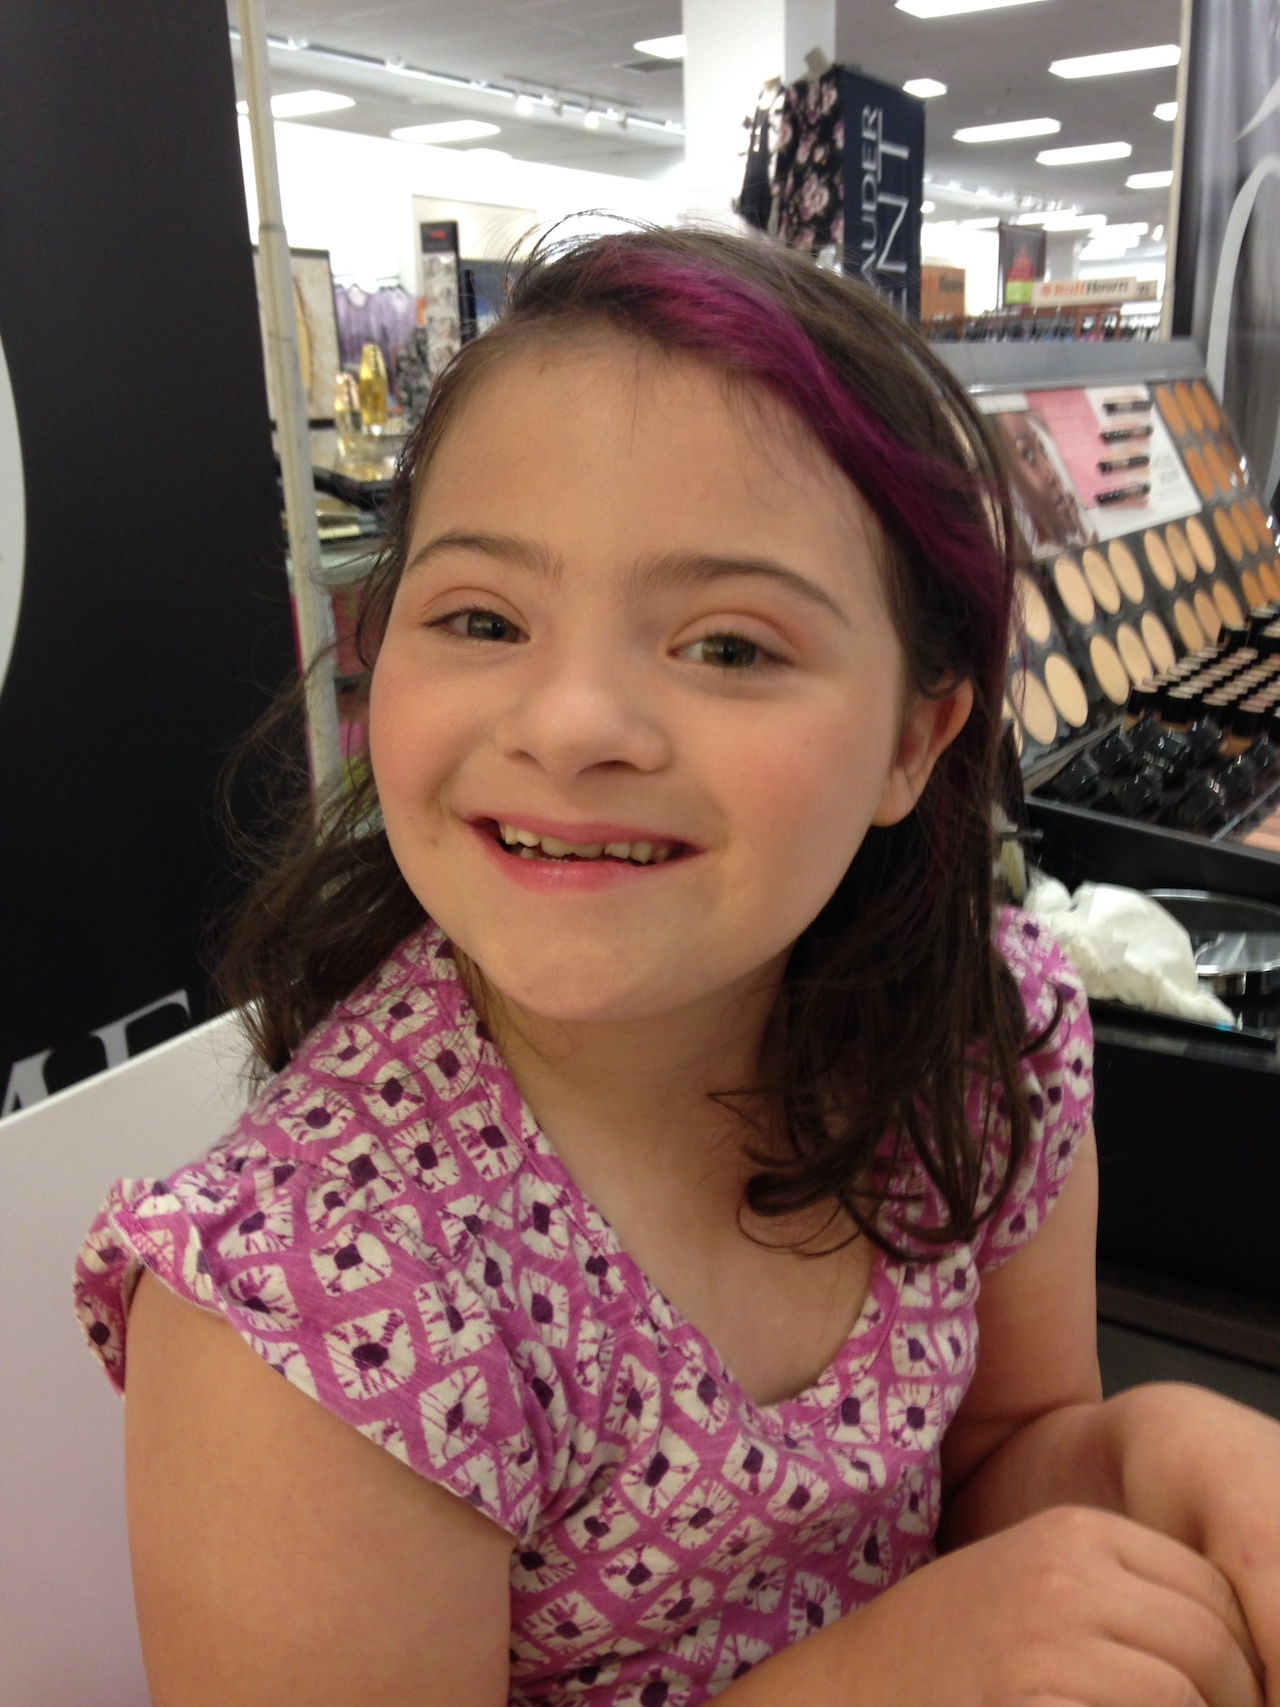 Little girl with Down syndrome wearing makeup and smiling